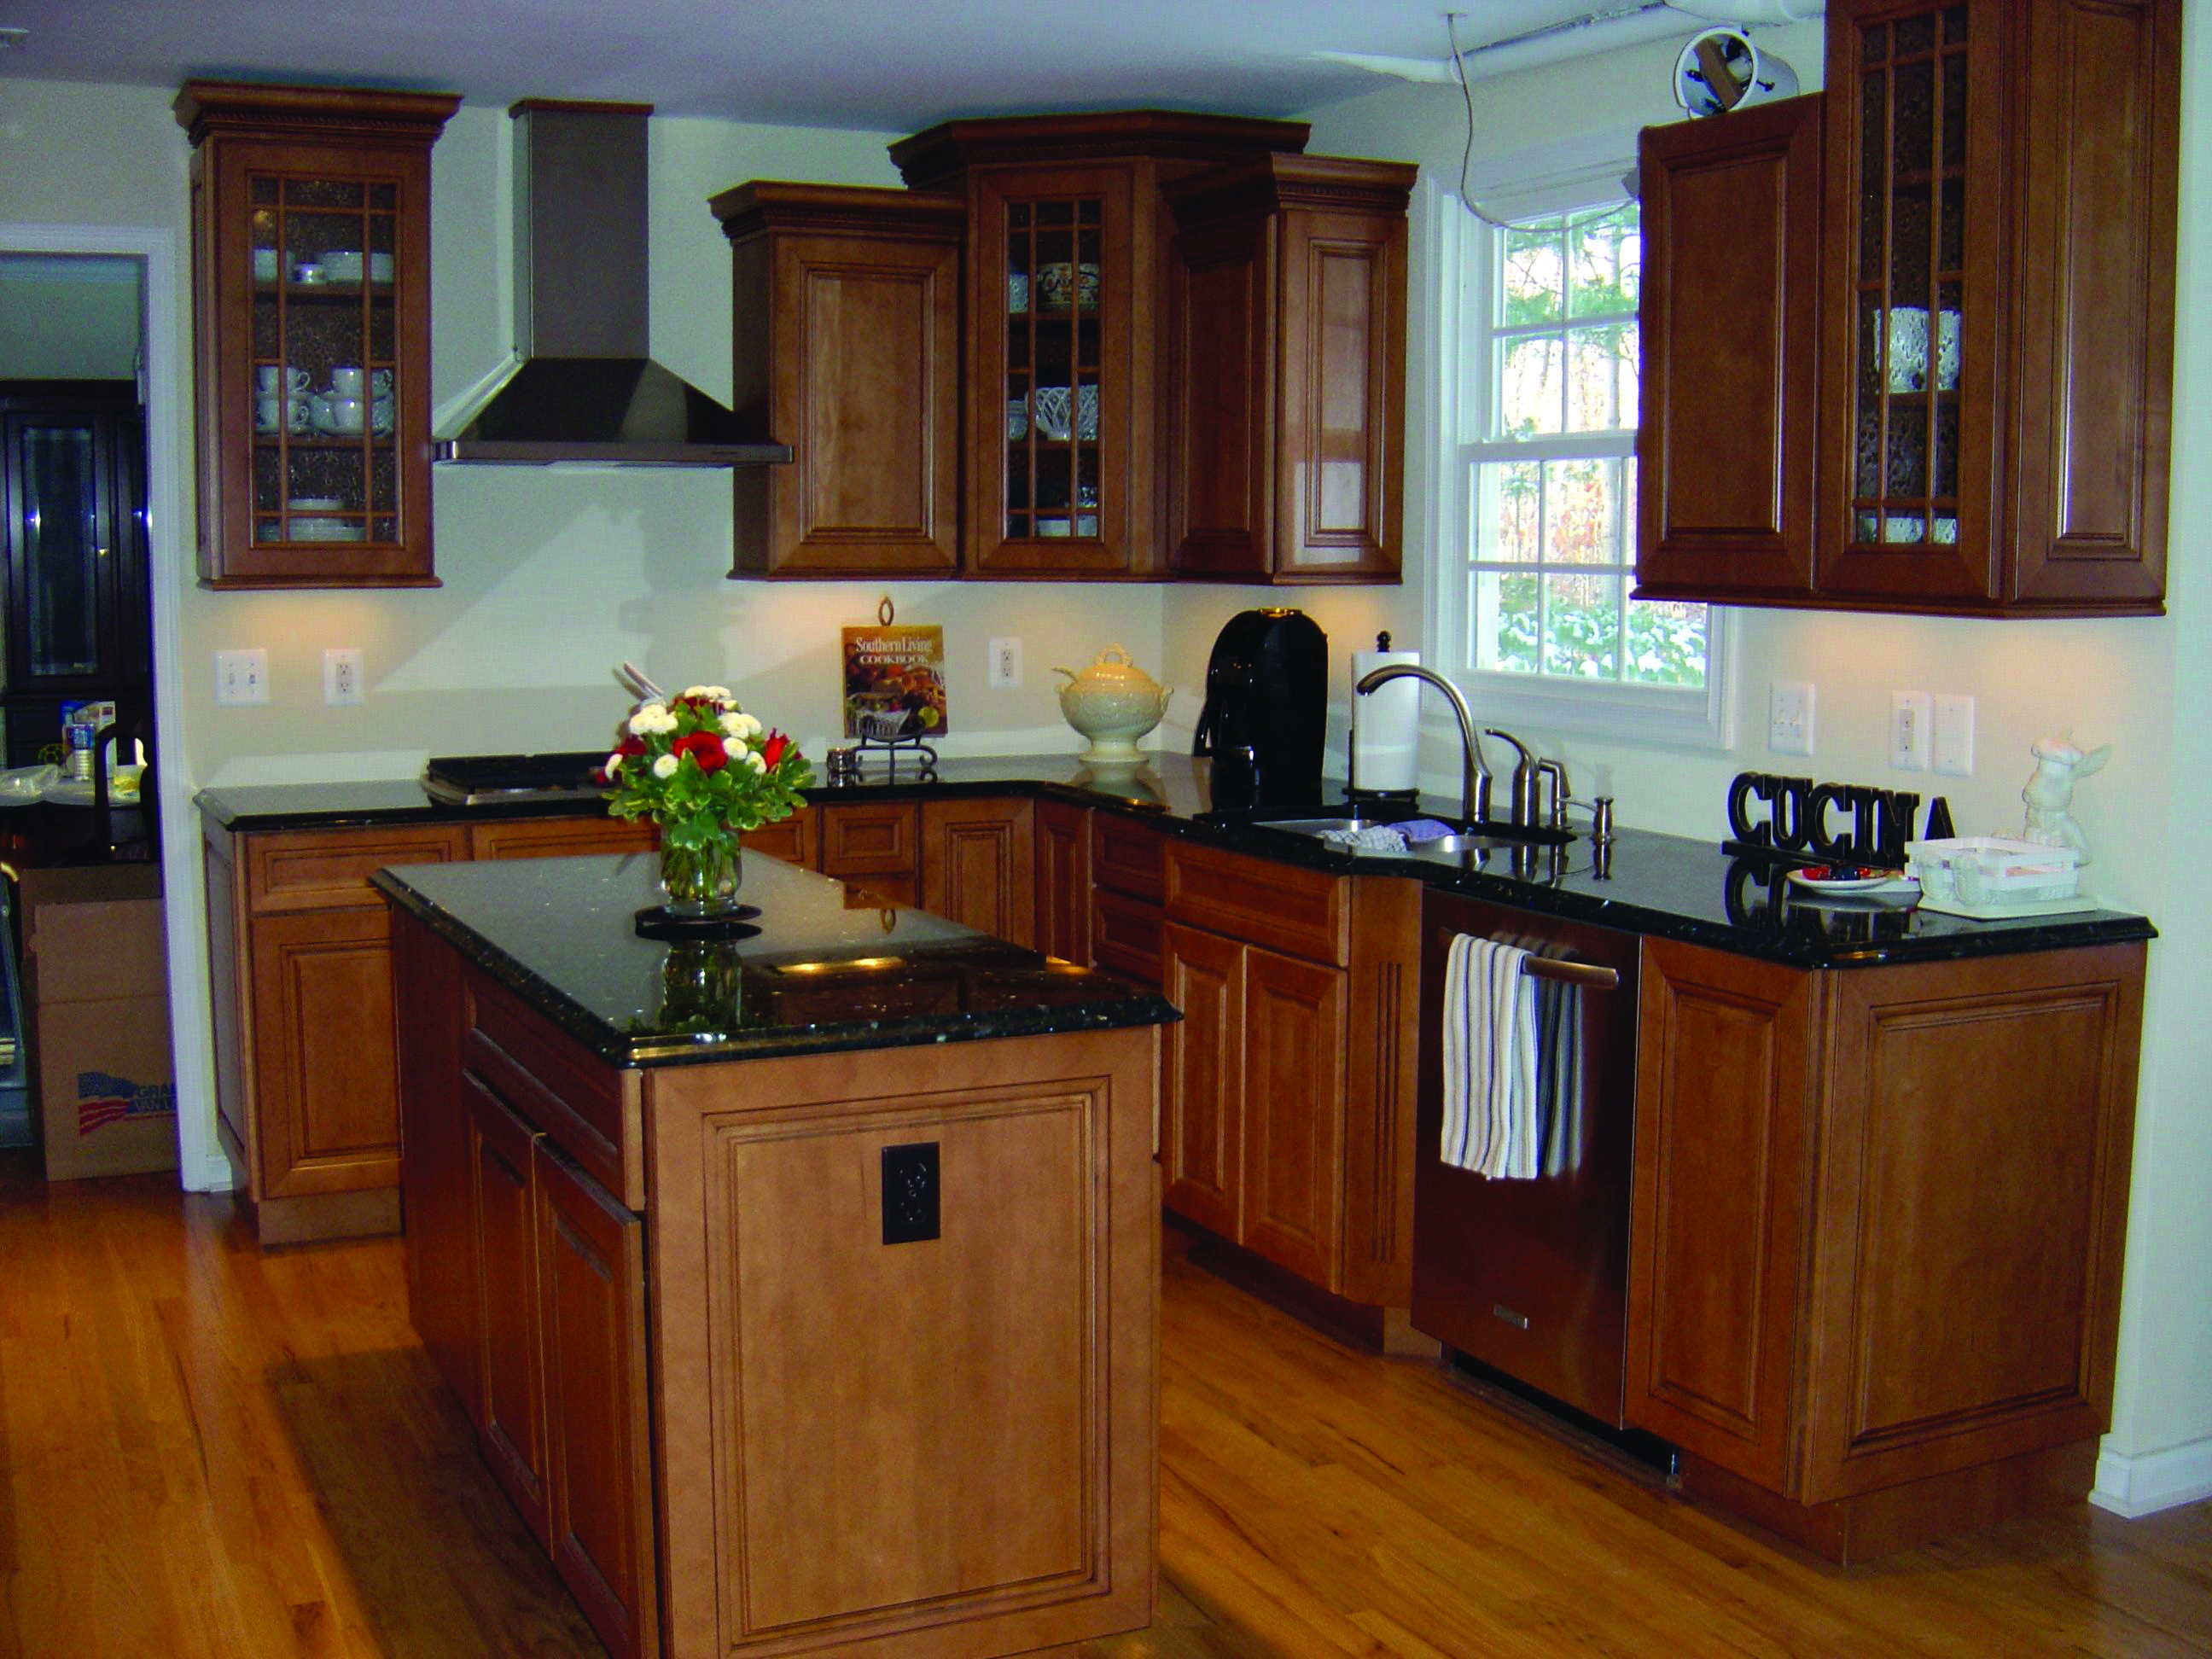 Dark Marble Countertops Colors Styles Maple Kitchen Cabinets Kitchen Cabinets And Countertops Outdoor Kitchen Cabinets